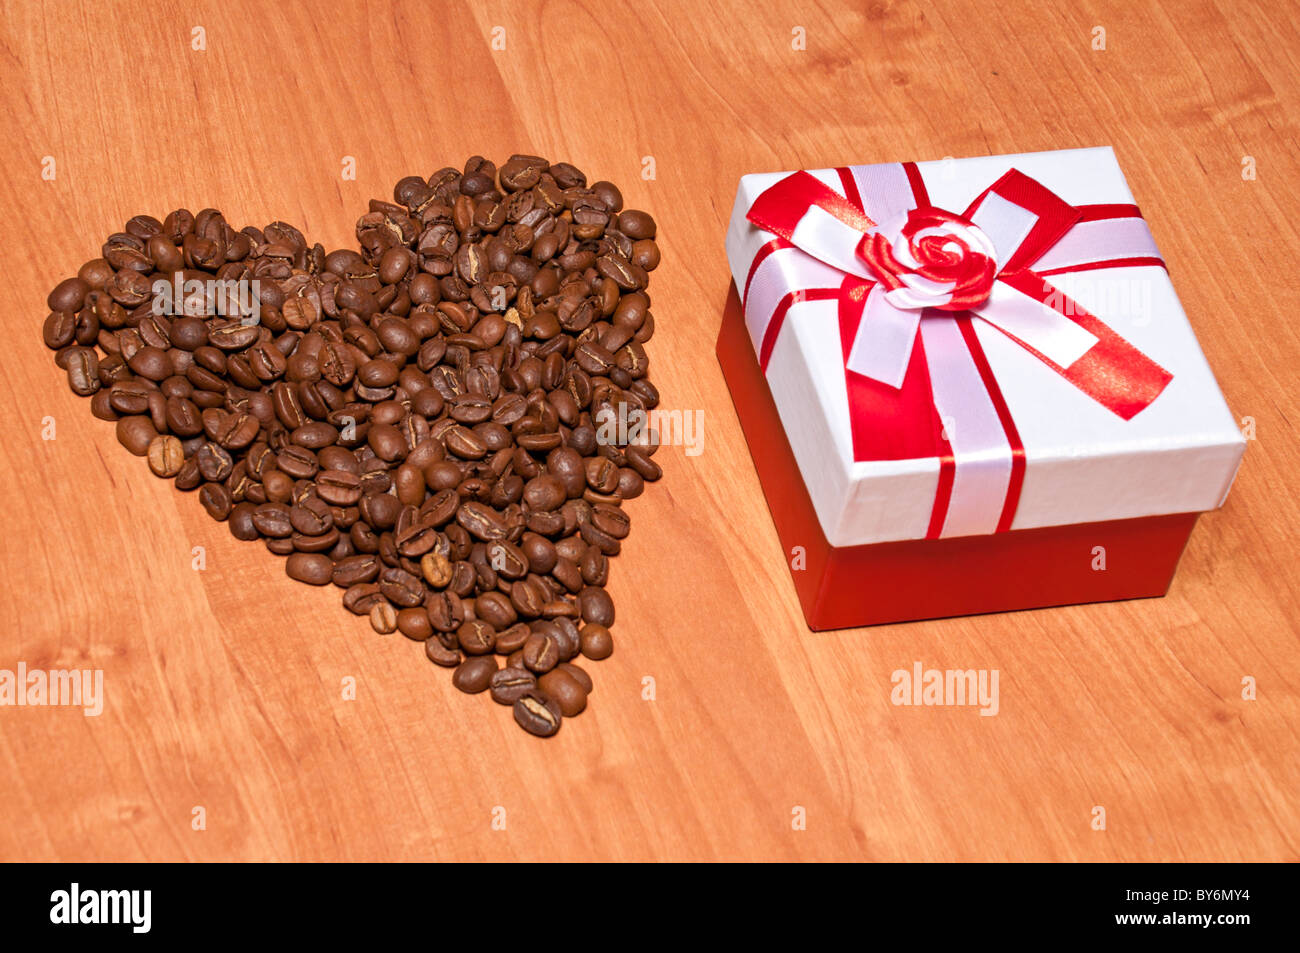 St. Valentine day's surprise: coffe heart and gift - Stock Image